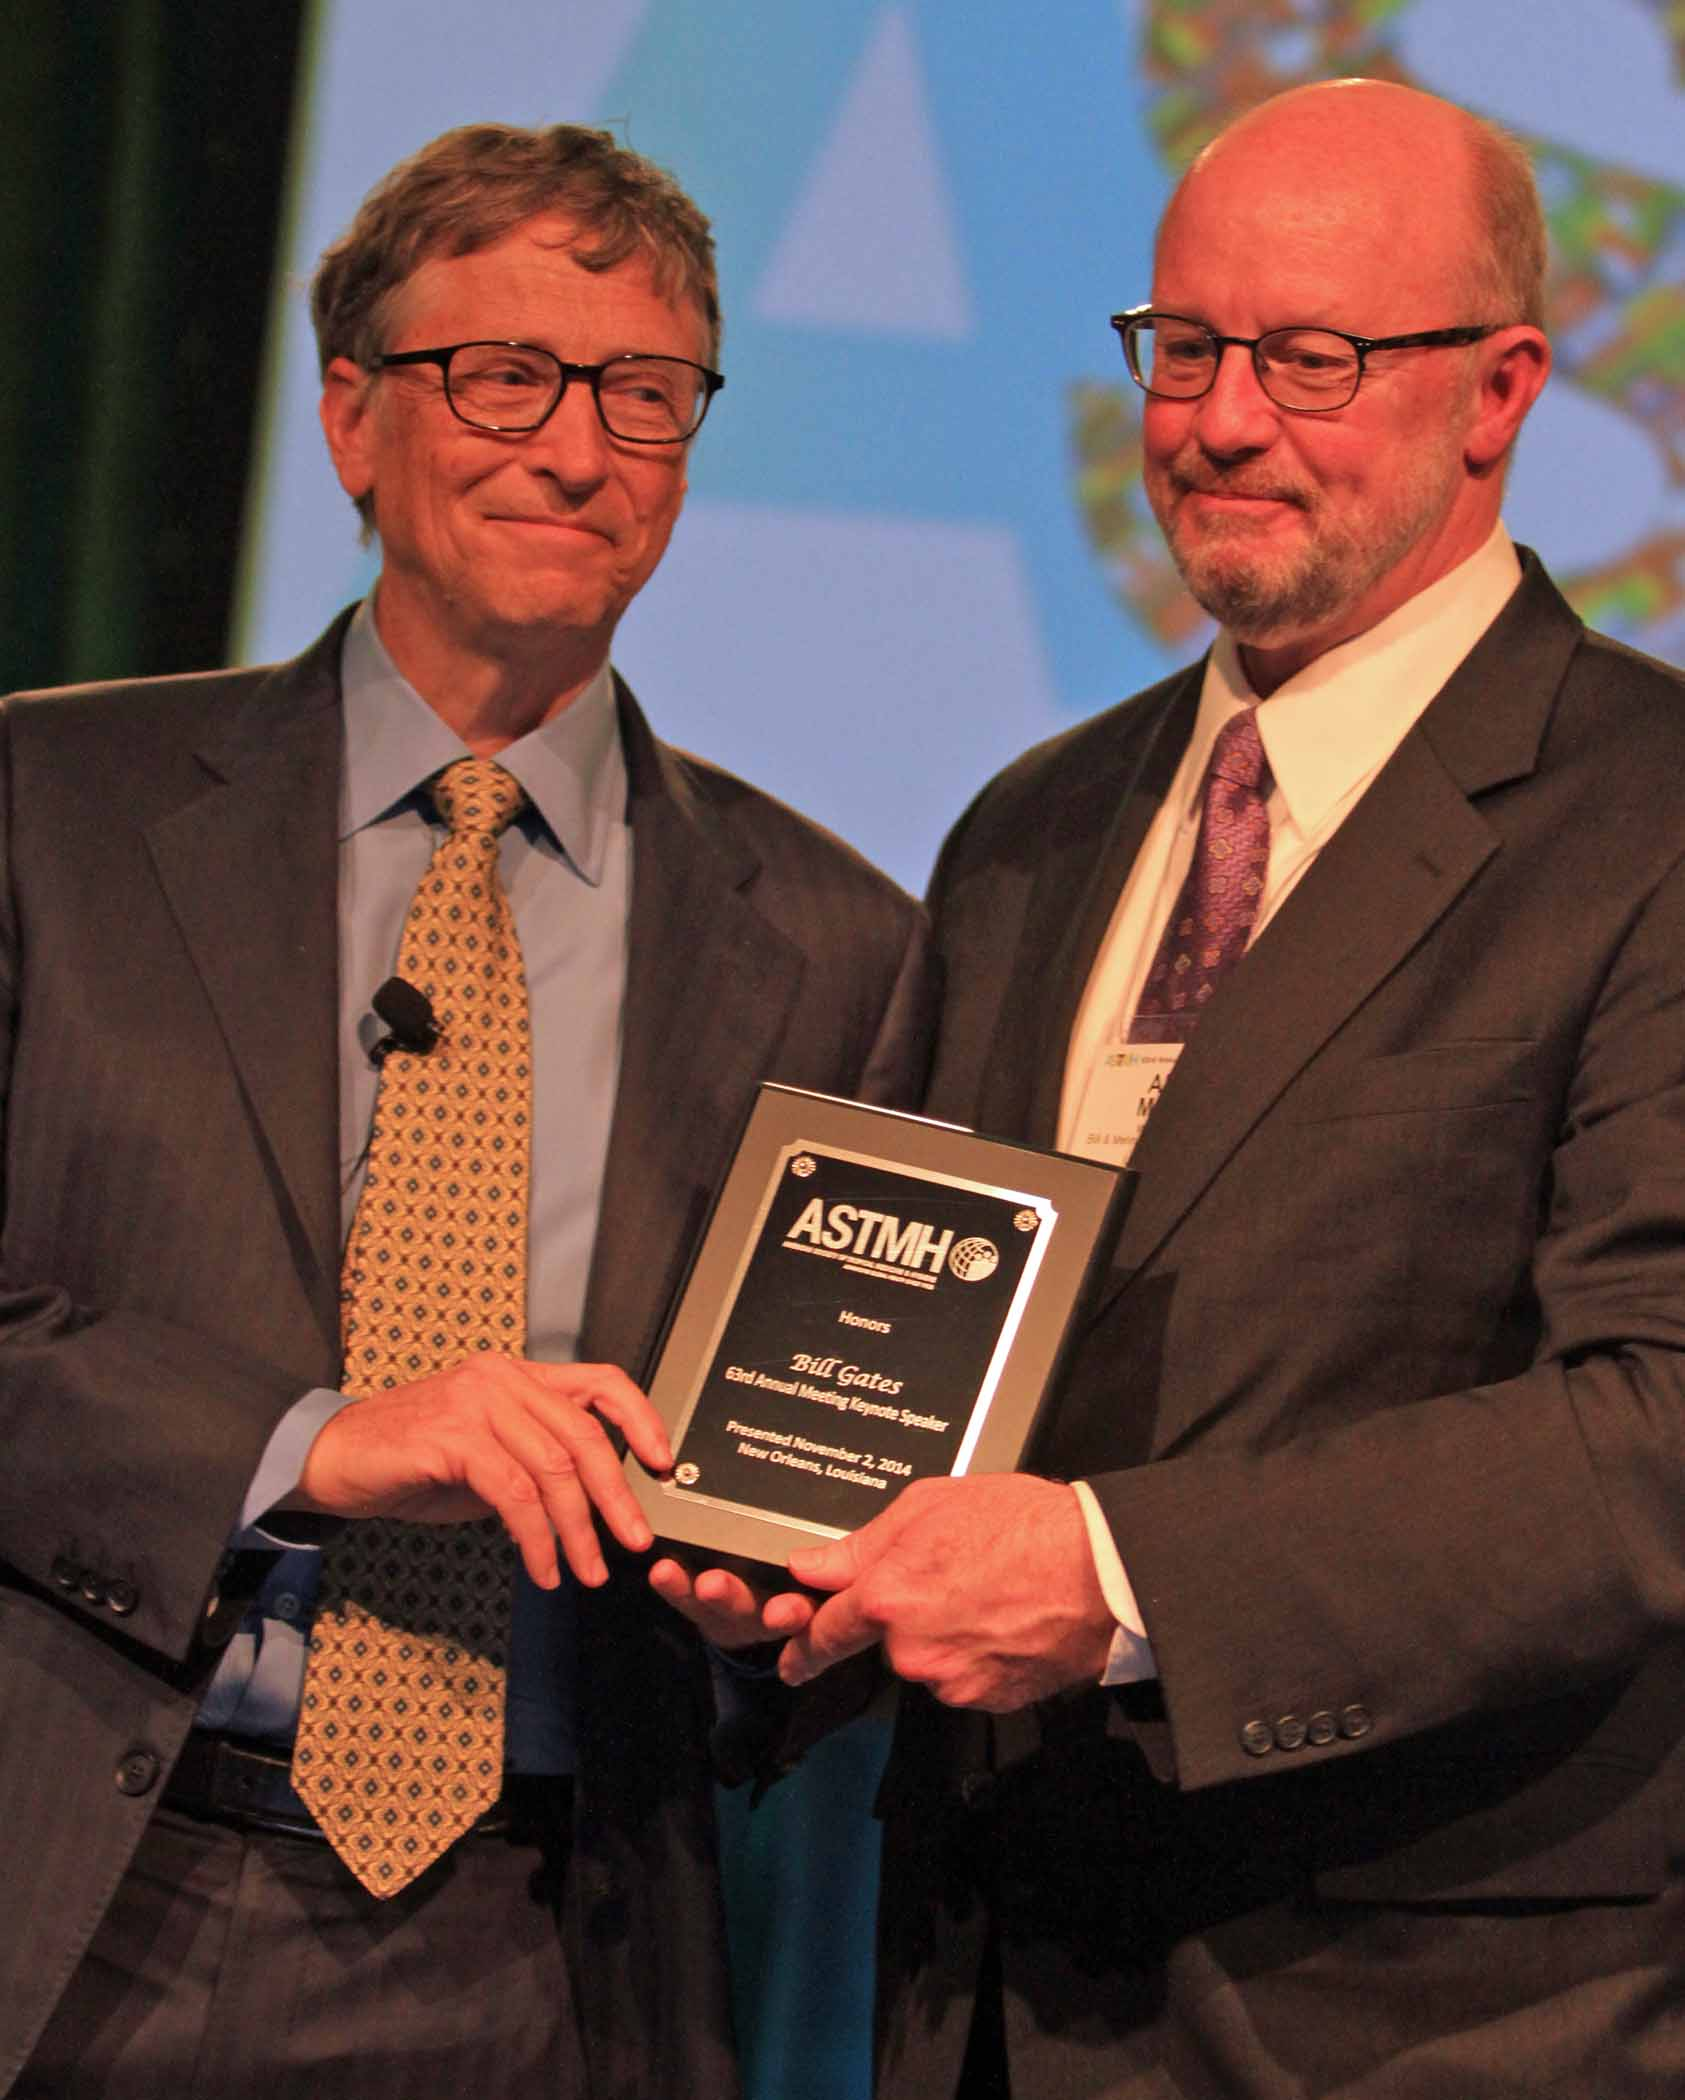 Bill Gates - ASTMH-5